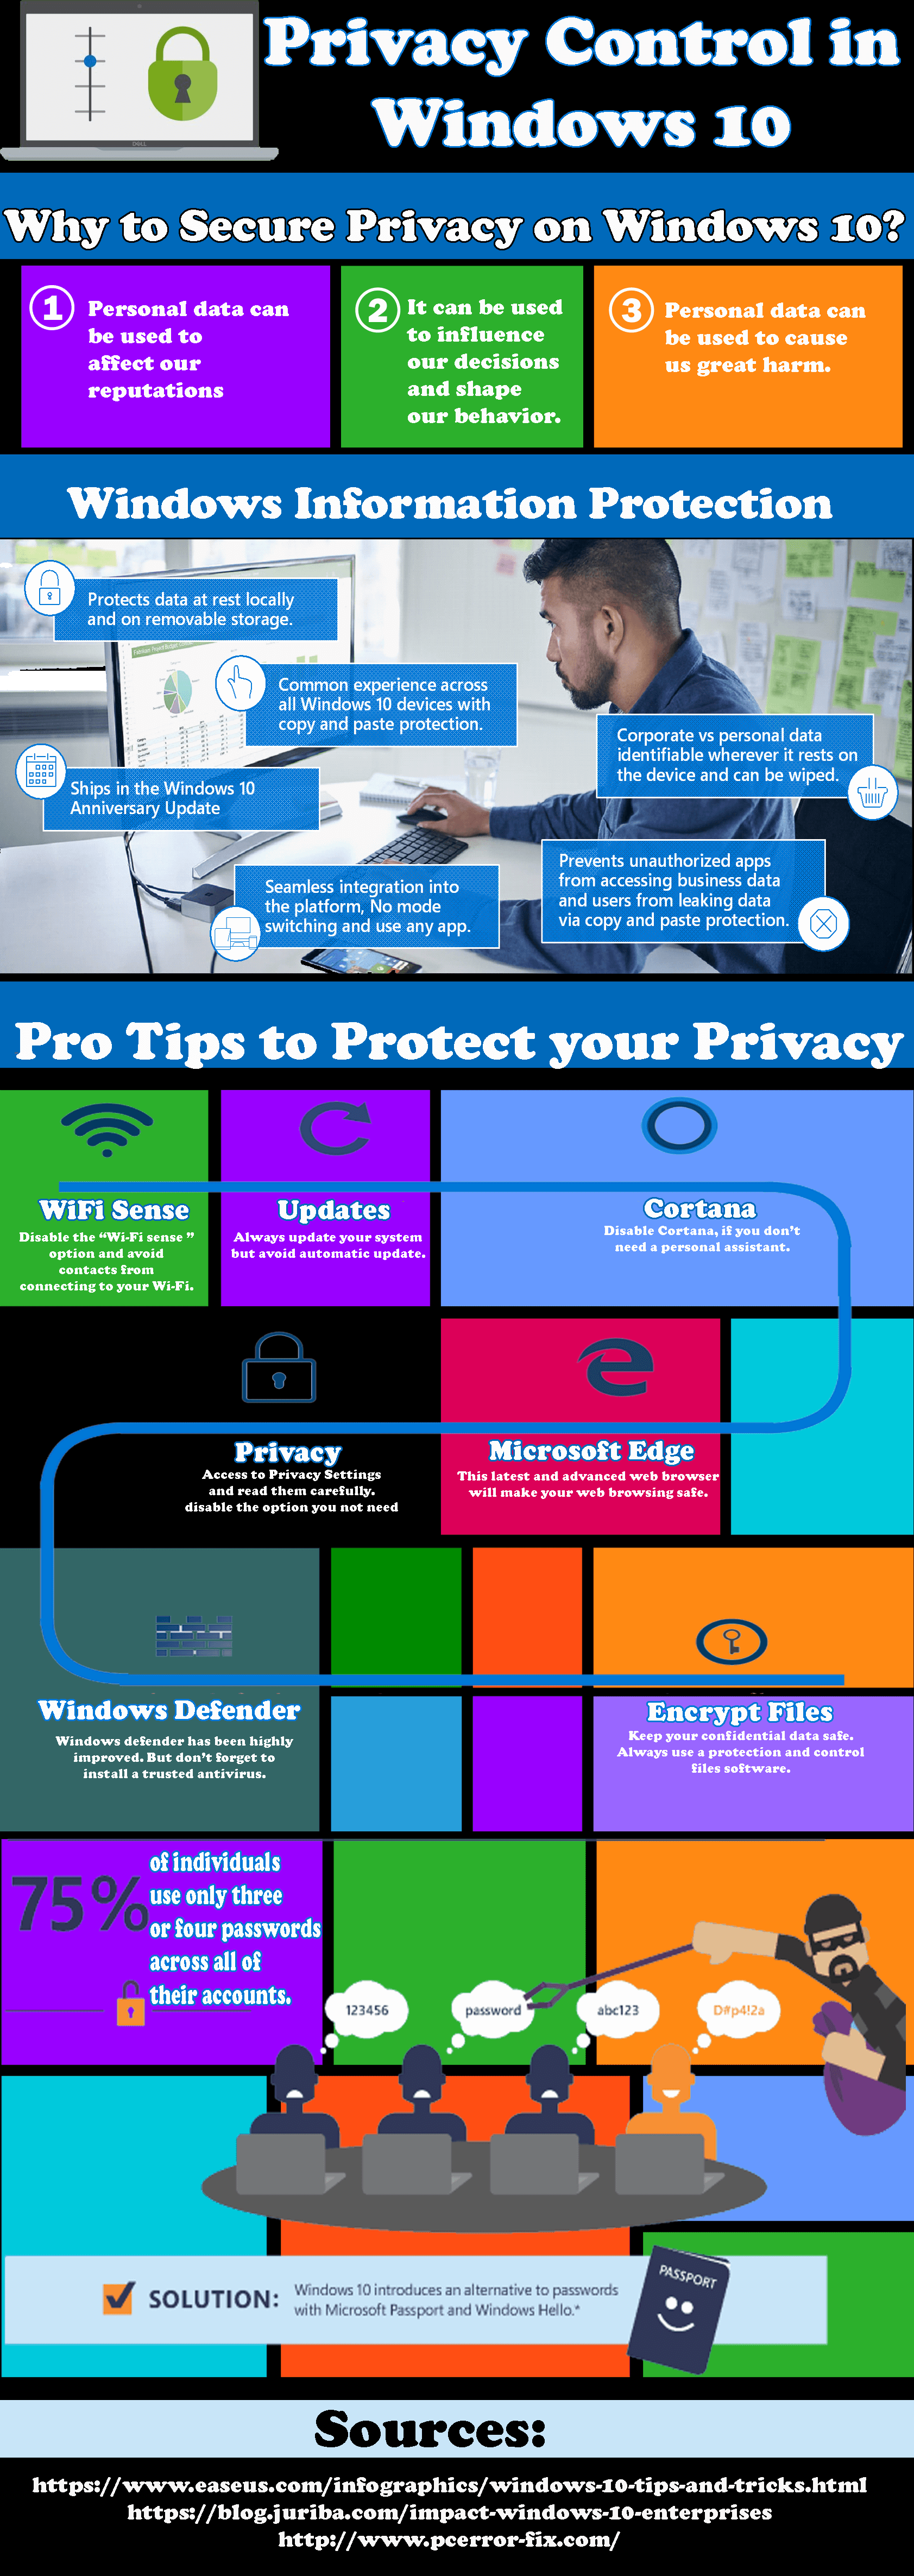 Windows 10 Privacy Control